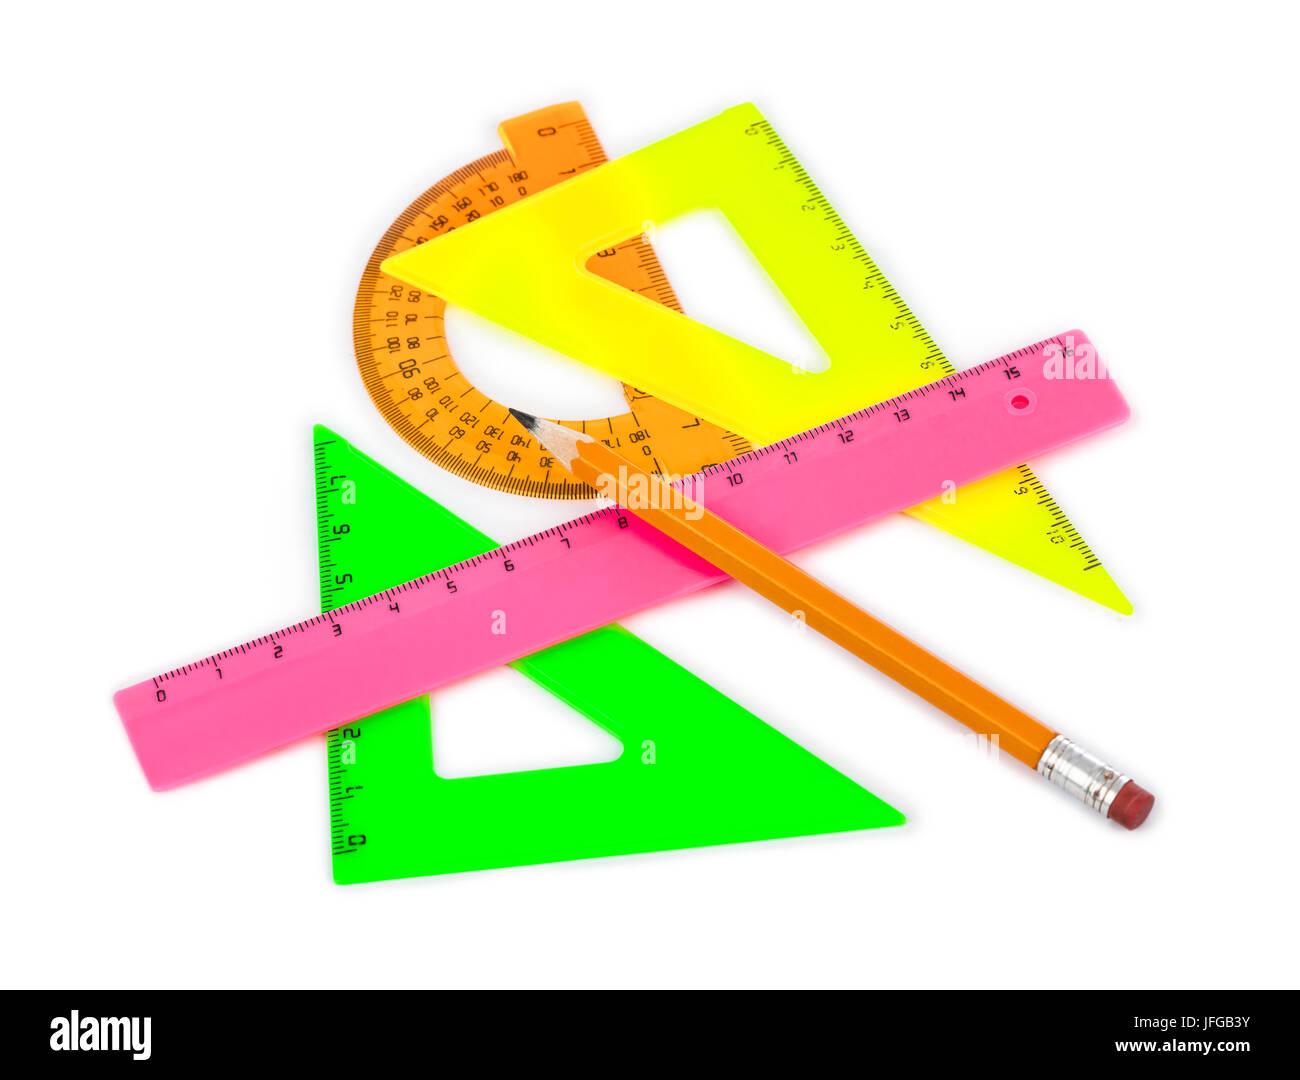 Multicolored rulers and pencil - Stock Image